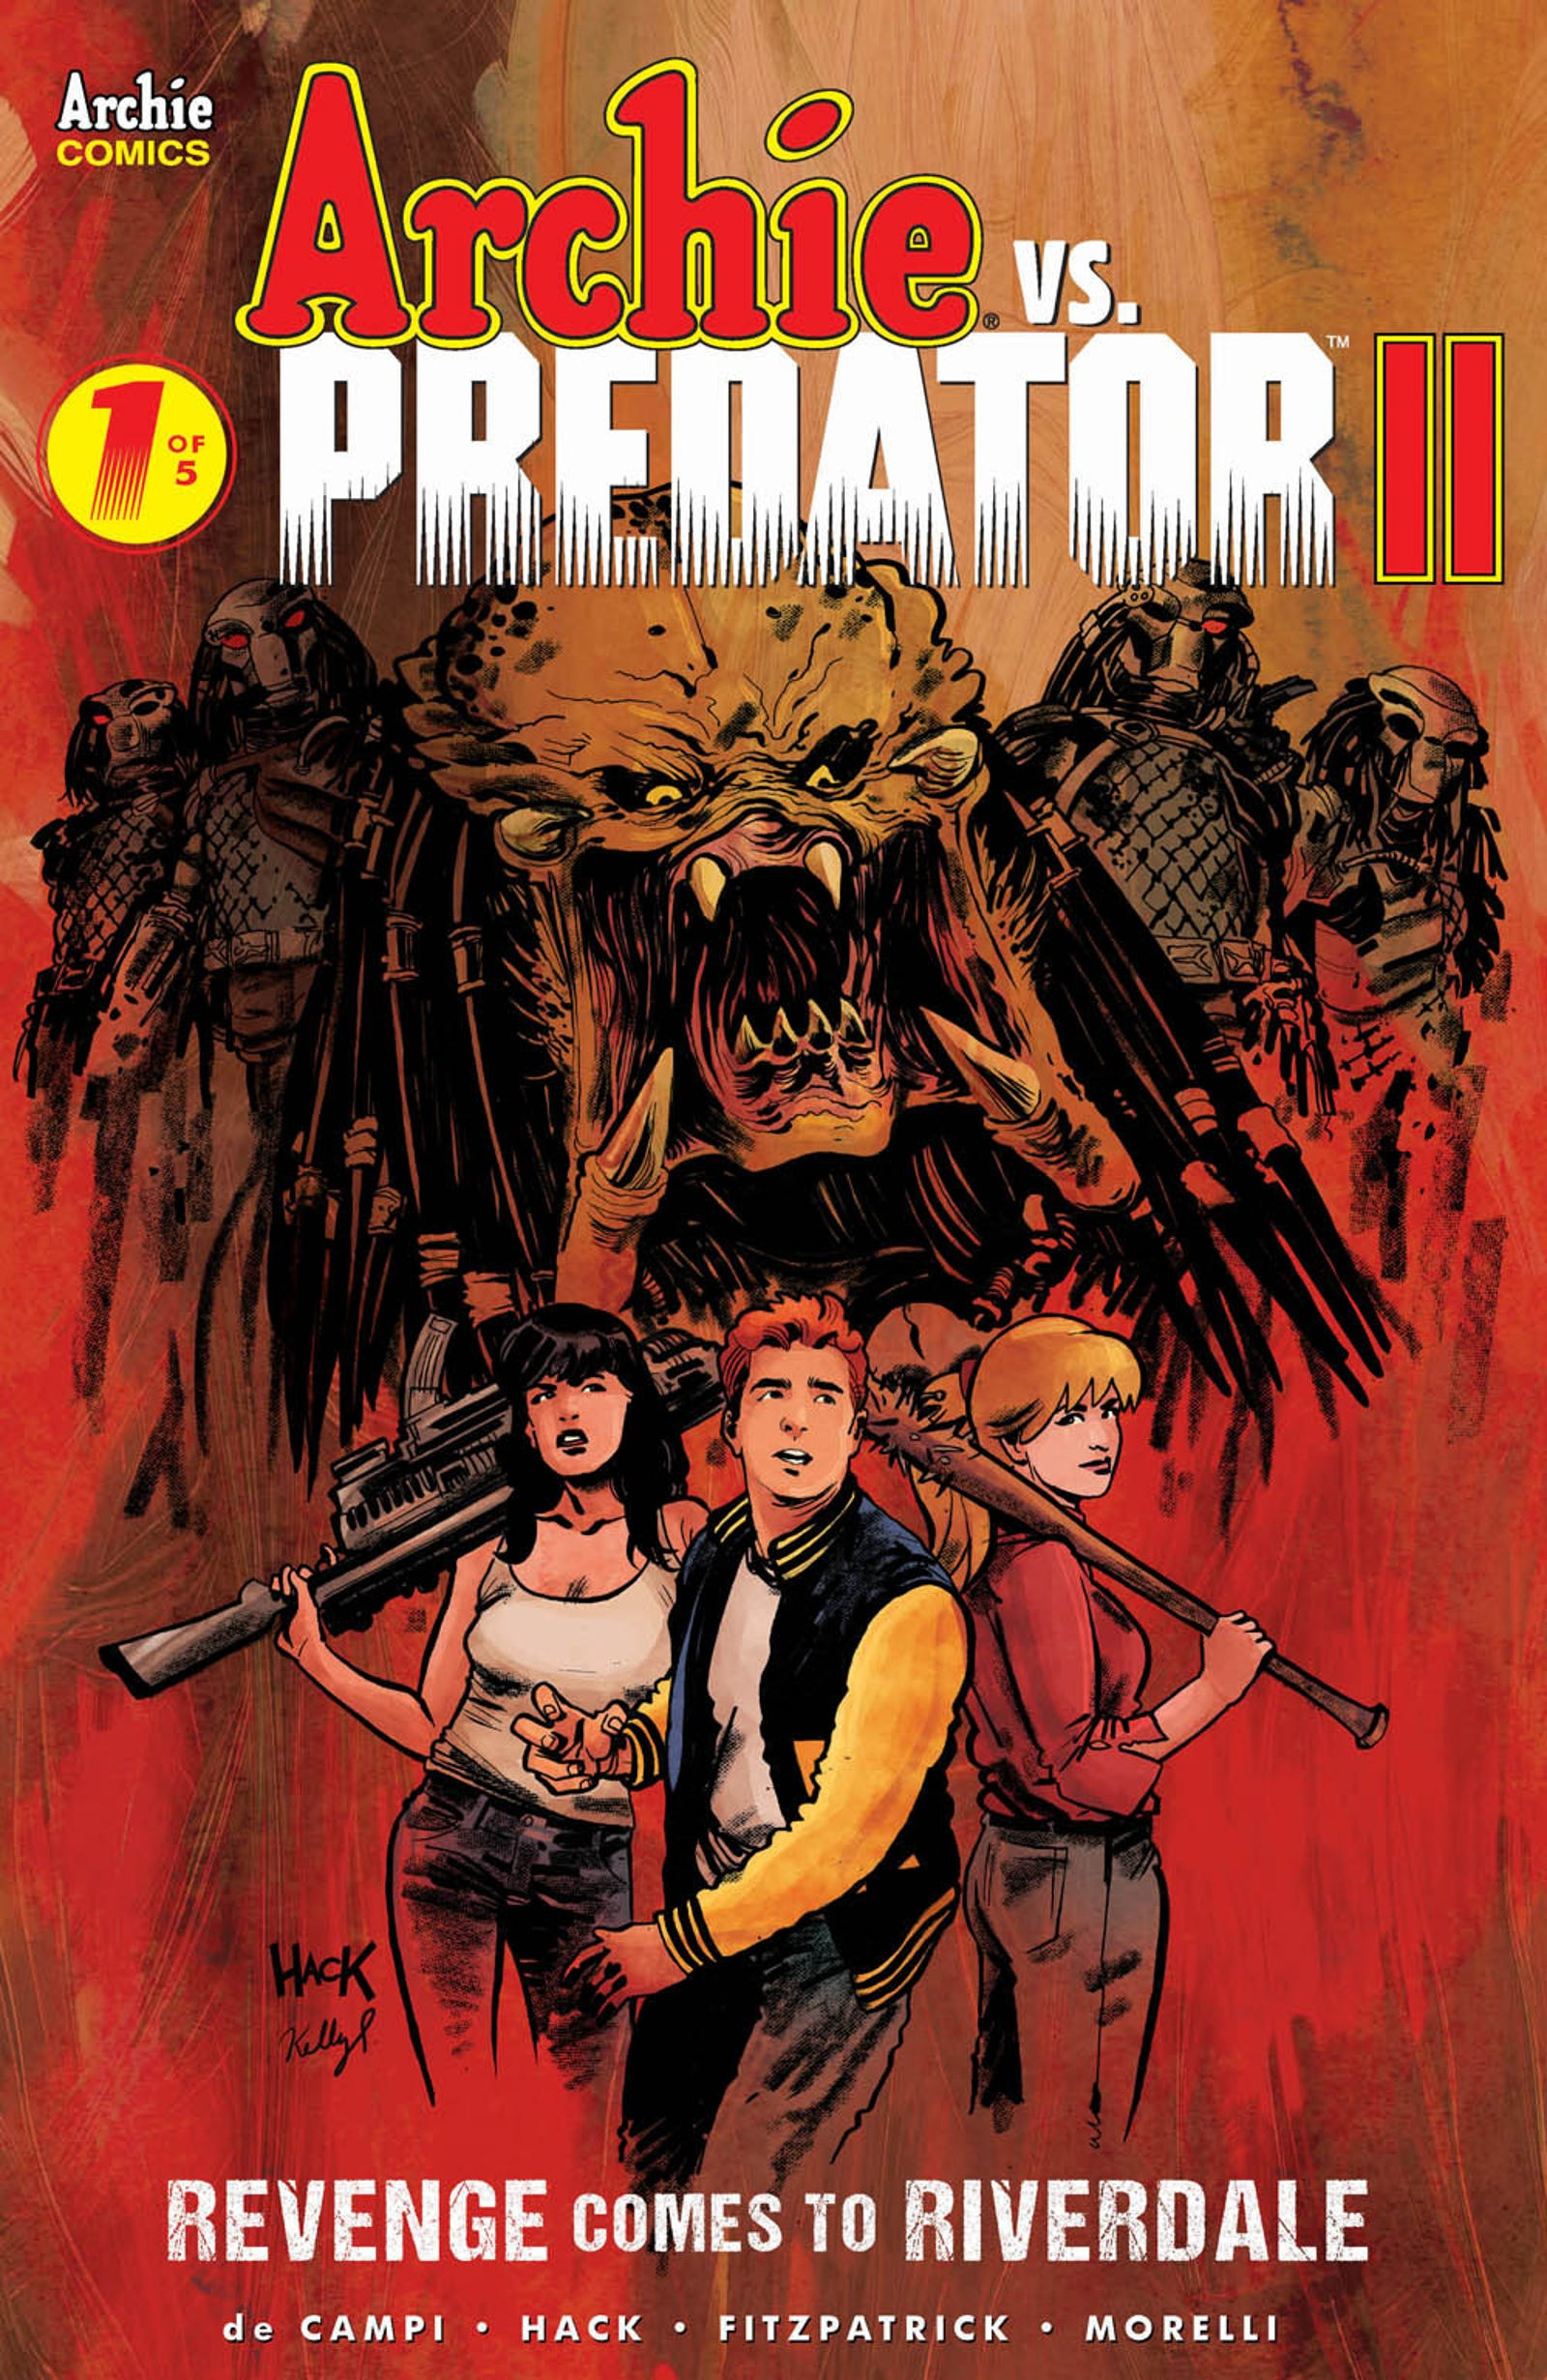 Every variant cover for the first issue of Archie vs. Predator 2.